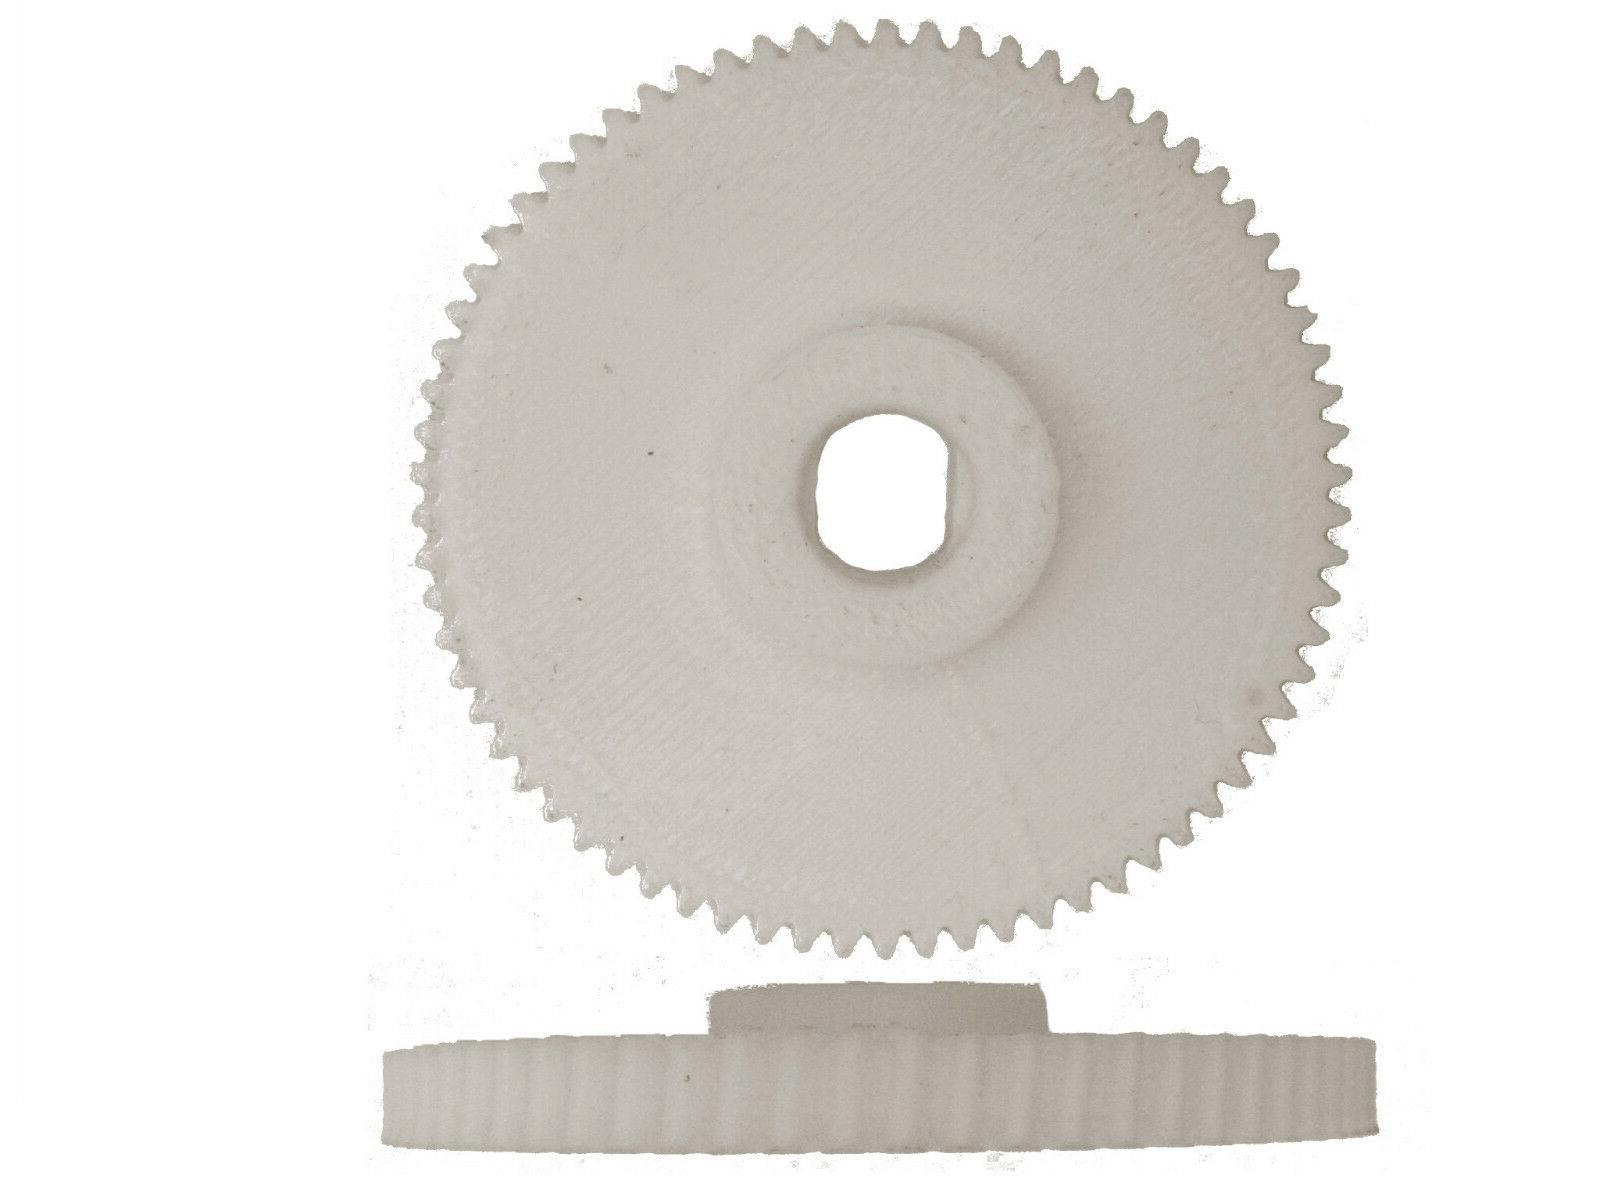 Model 18 or 19 Replacement Gear for Hunt Boston Electric Pen